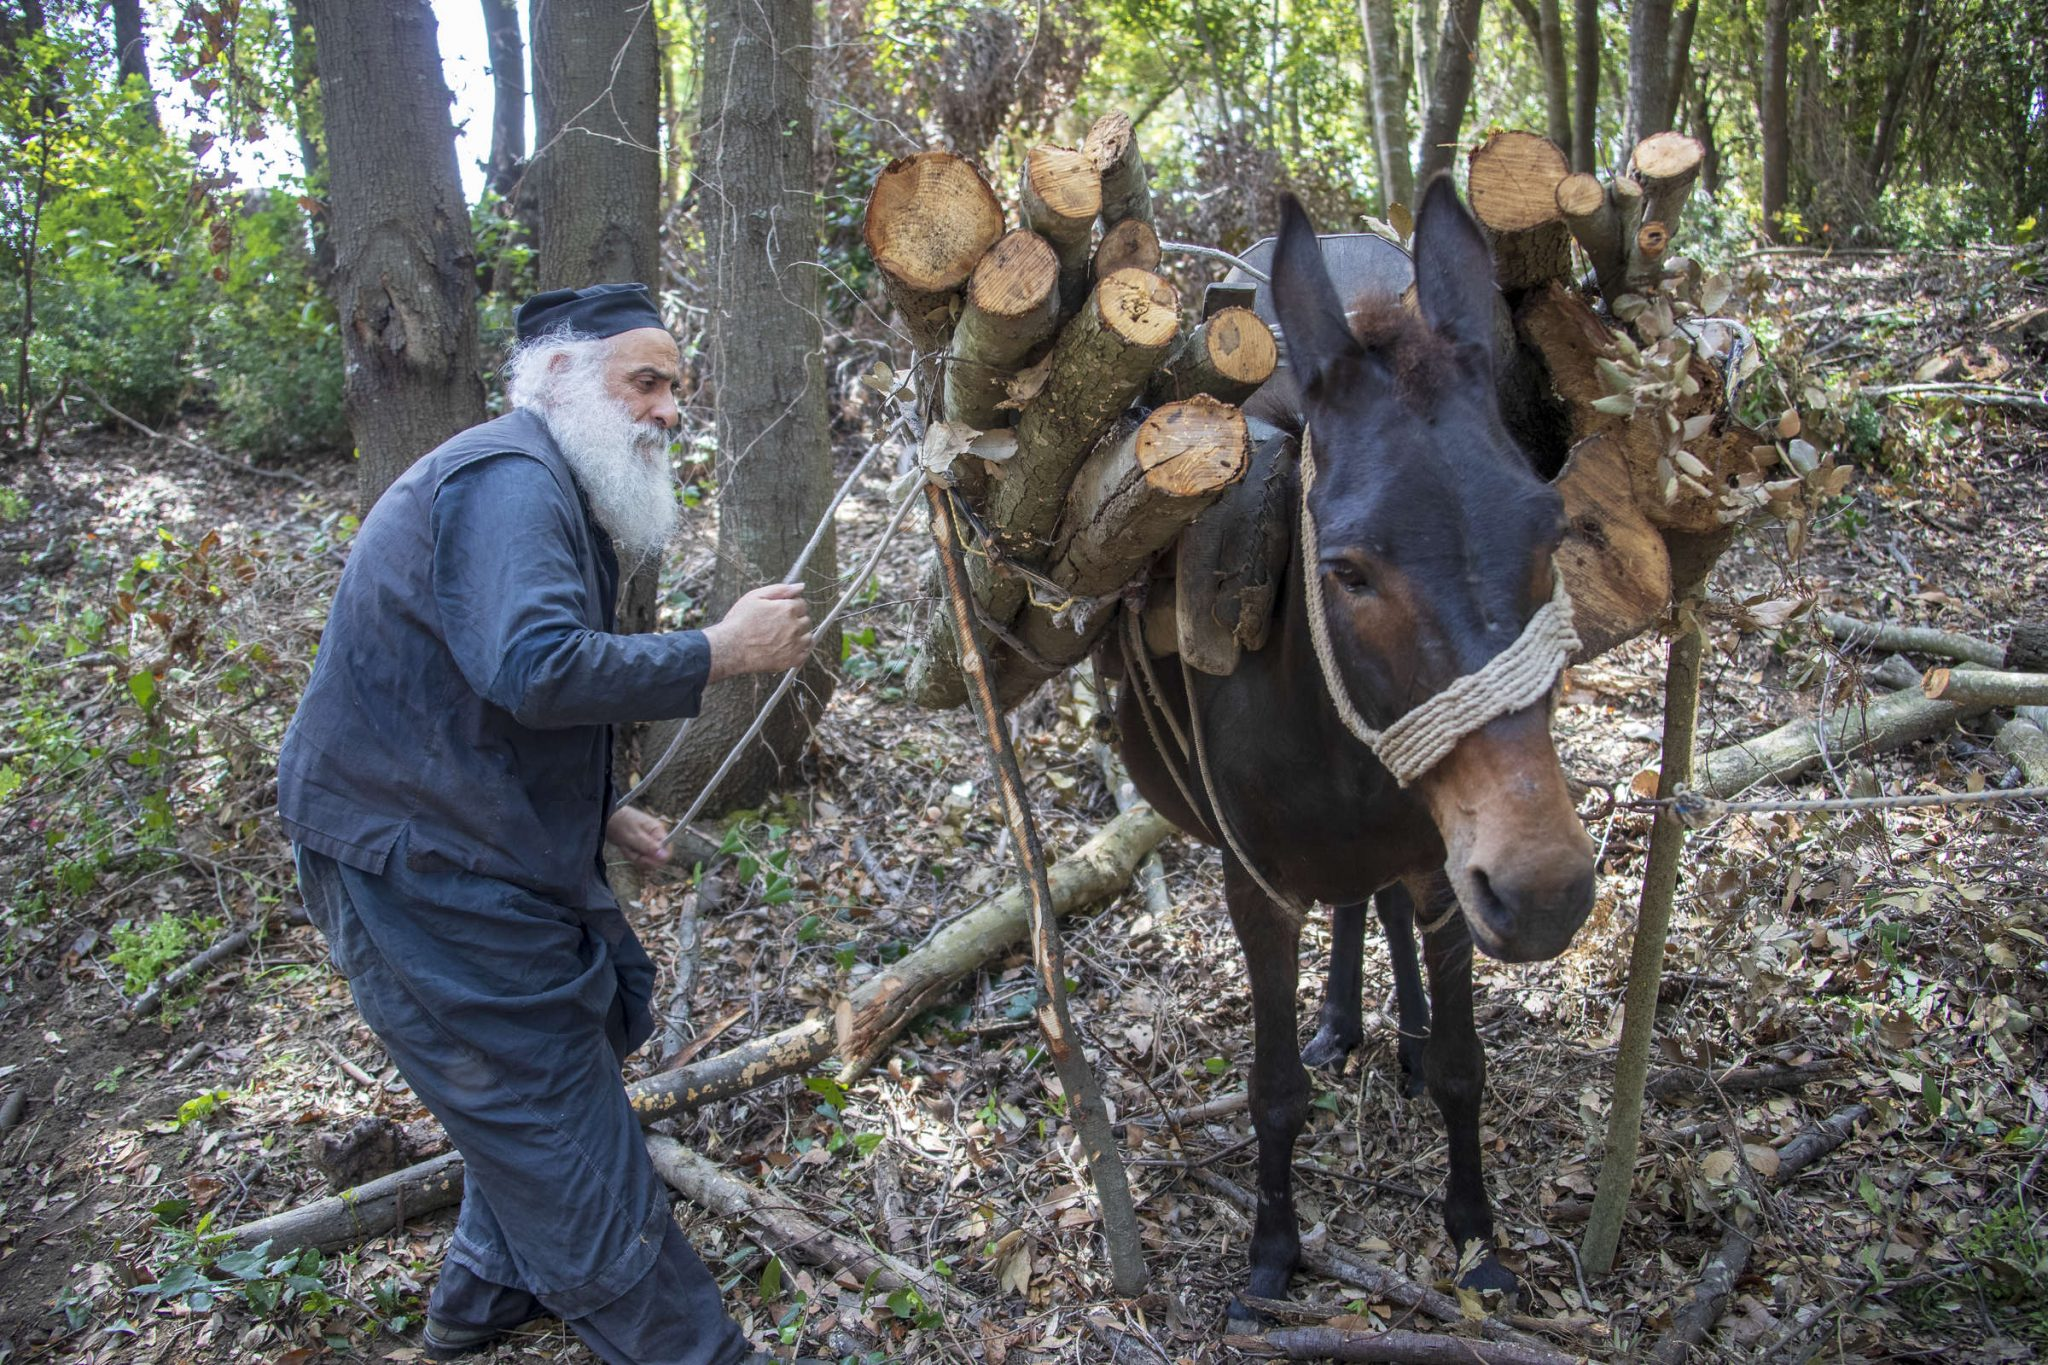 What can we learn from mules? - A photo journal with great schema monks and mules